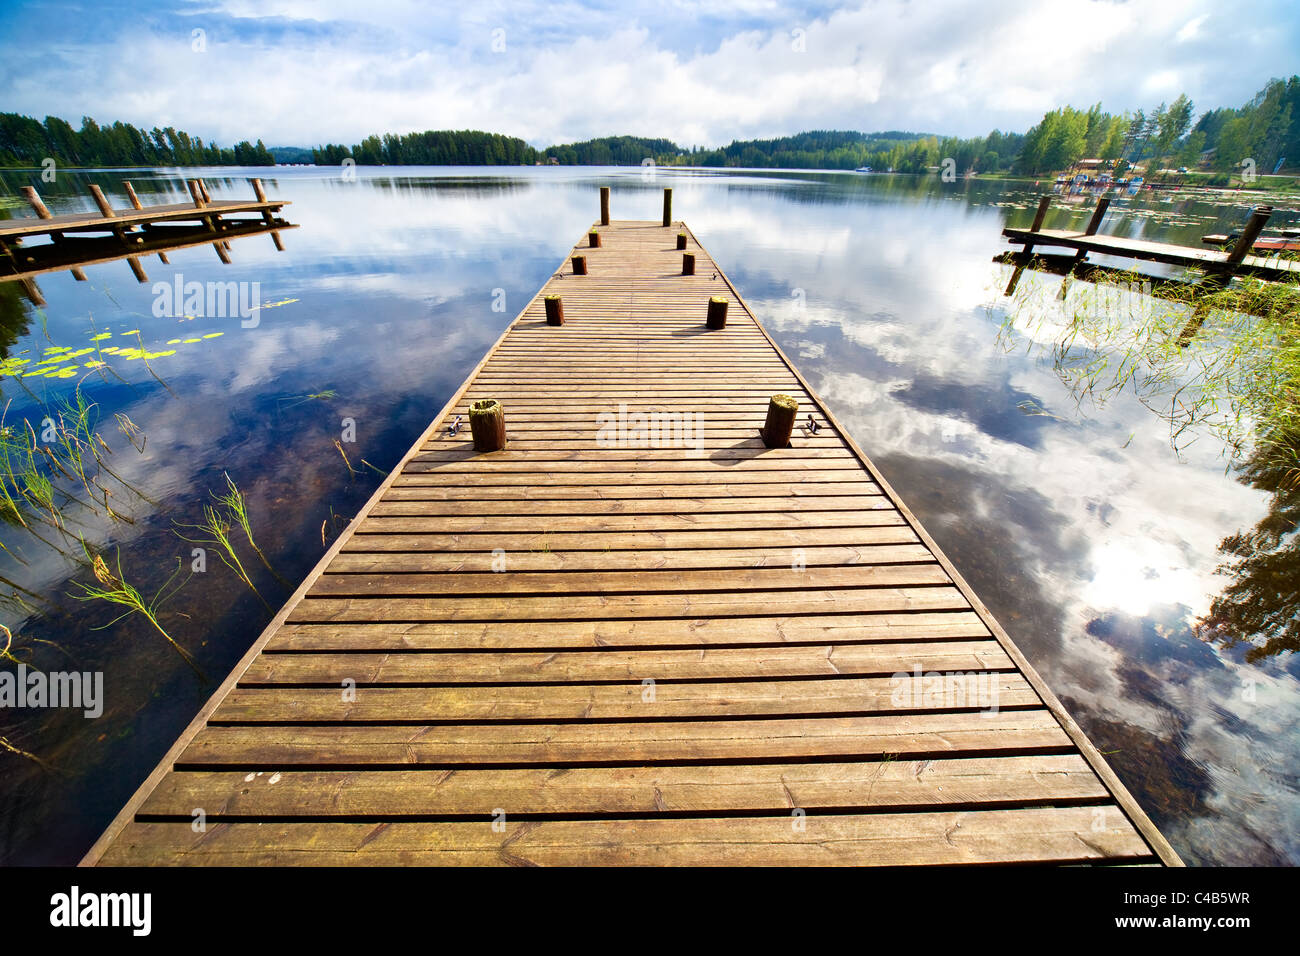 Wooden bridge. Wide angle view. - Stock Image